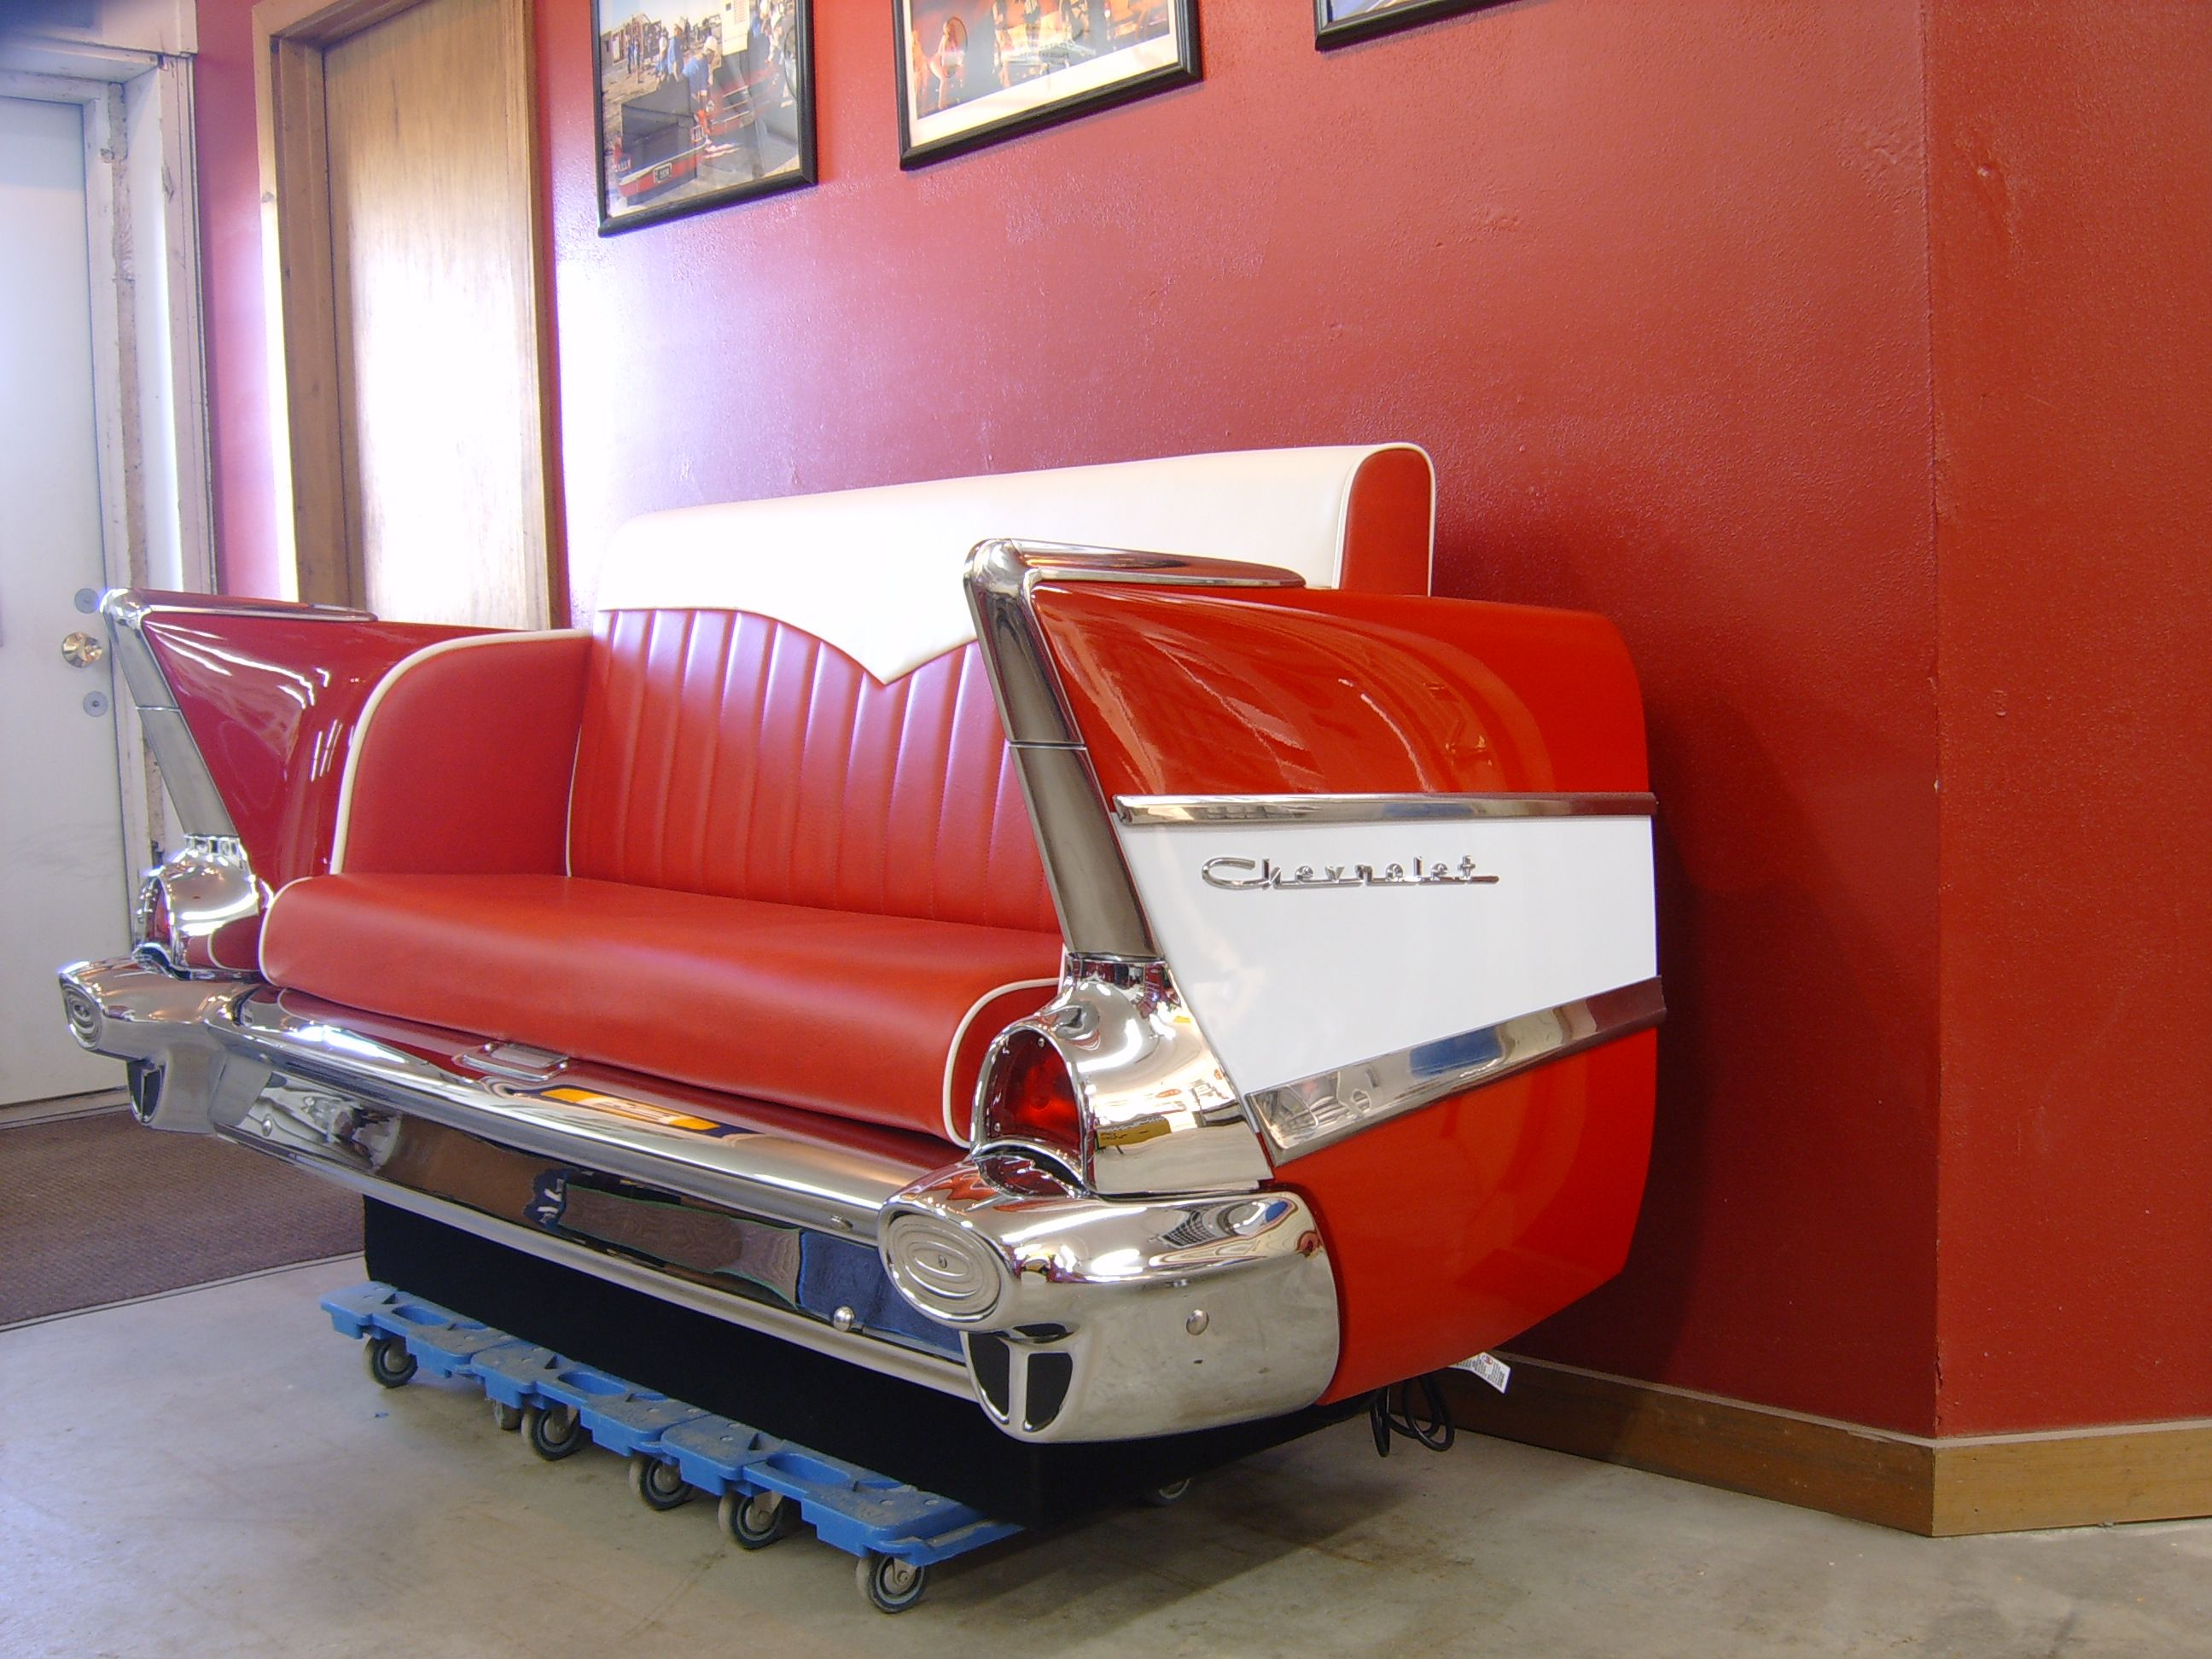 cool couches for man cave. 1957 Chevrolet Car Couch Cool Idea For A Man Cave Couches